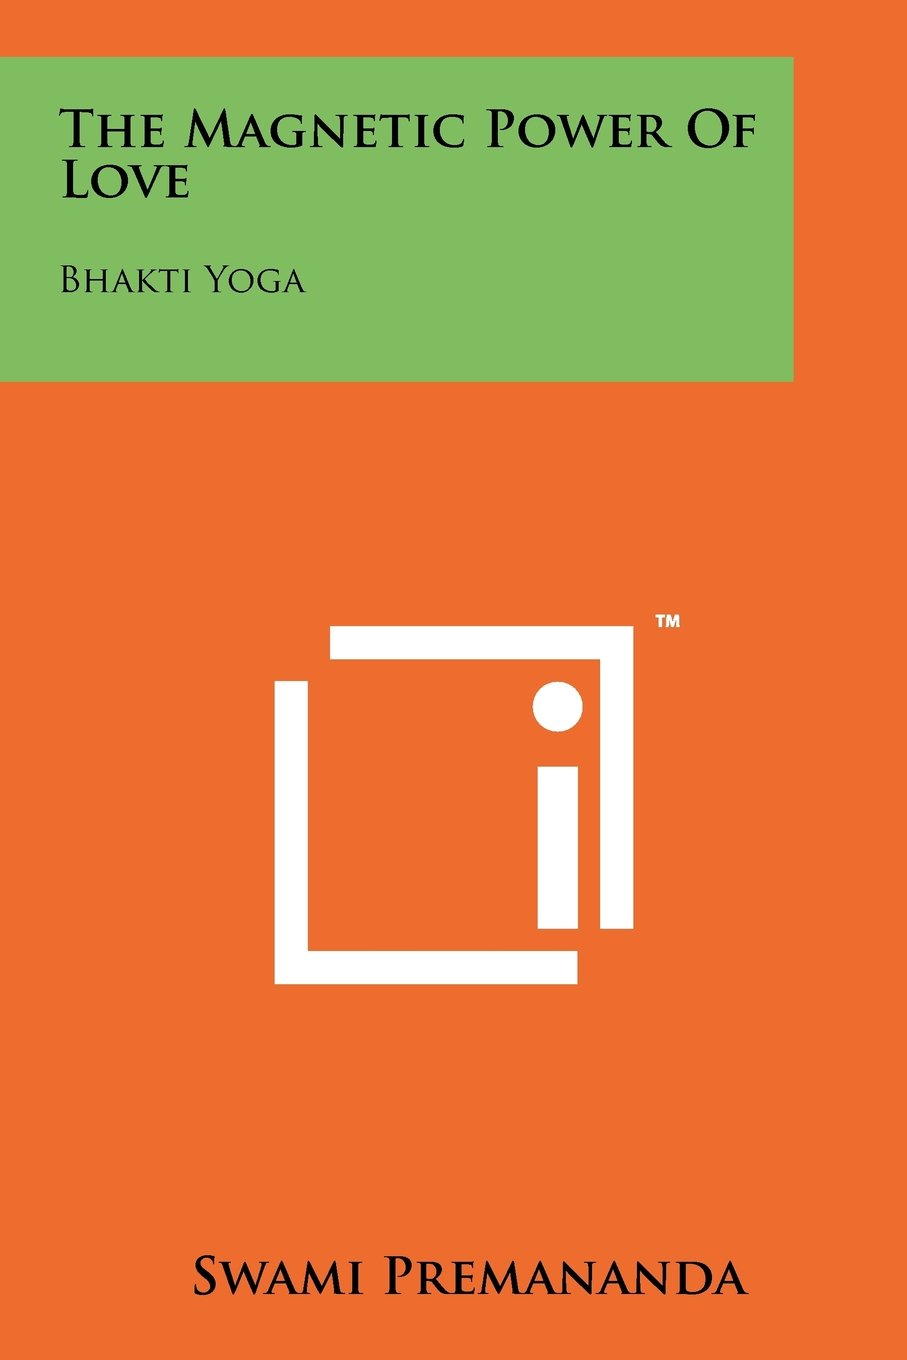 The Magnetic Power Of Love: Bhakti Yoga: Amazon.es: Swami ...